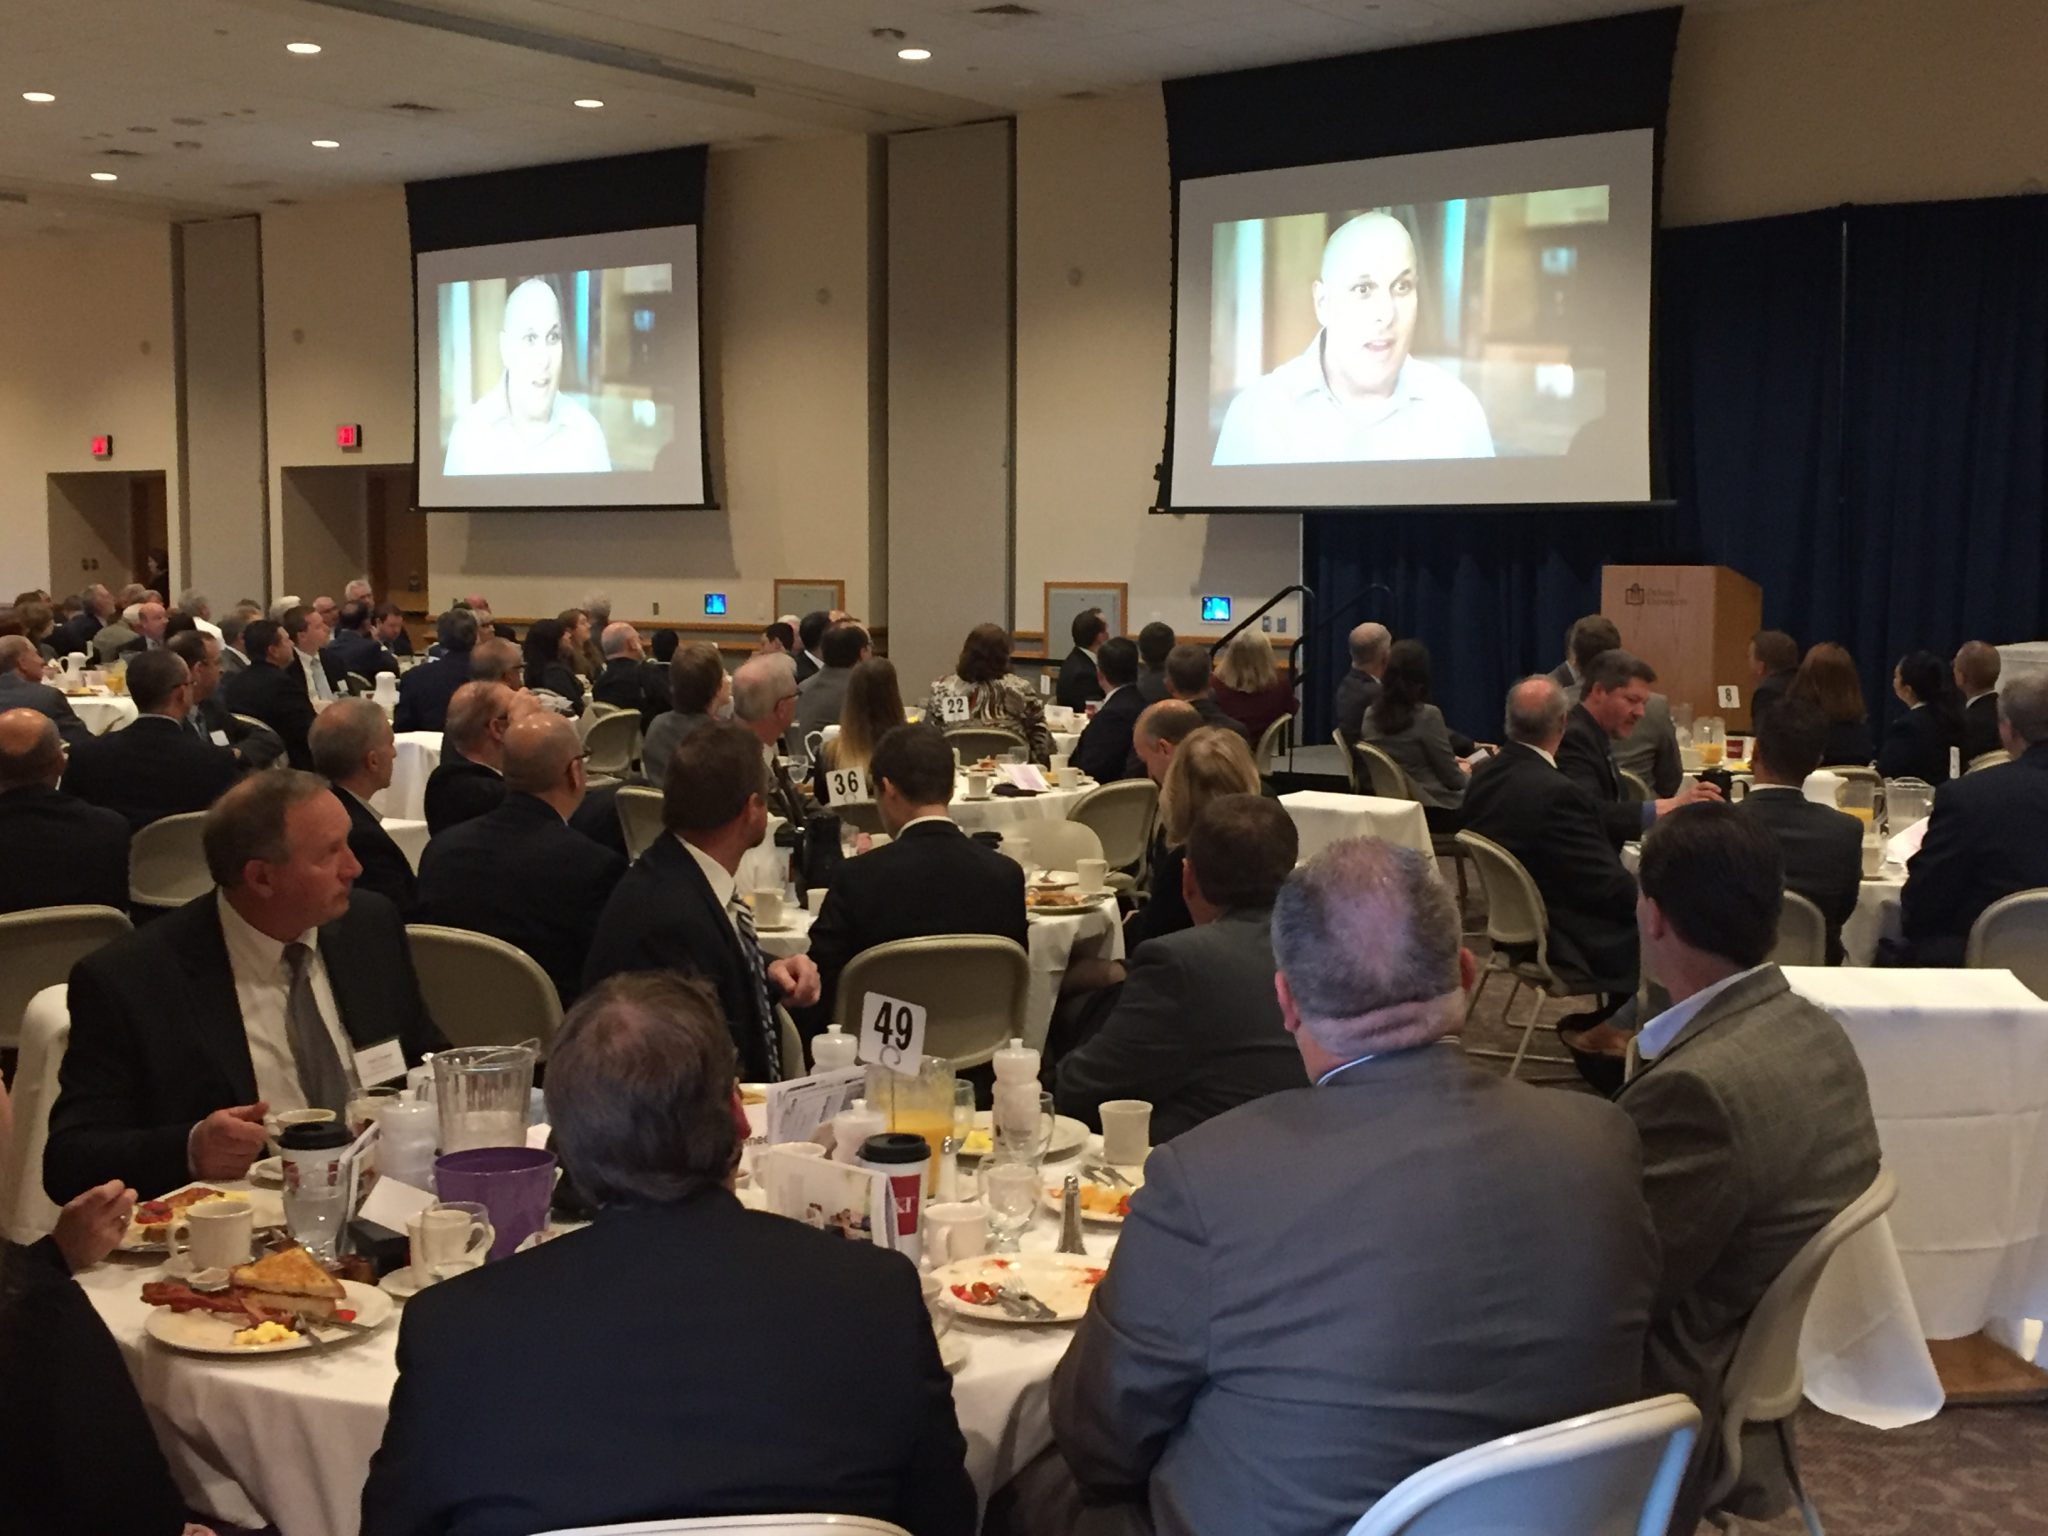 More than 450 people attended the 24th Annual March of Dimes Commercial & Industrial Real Estate Awards at DeSales University.